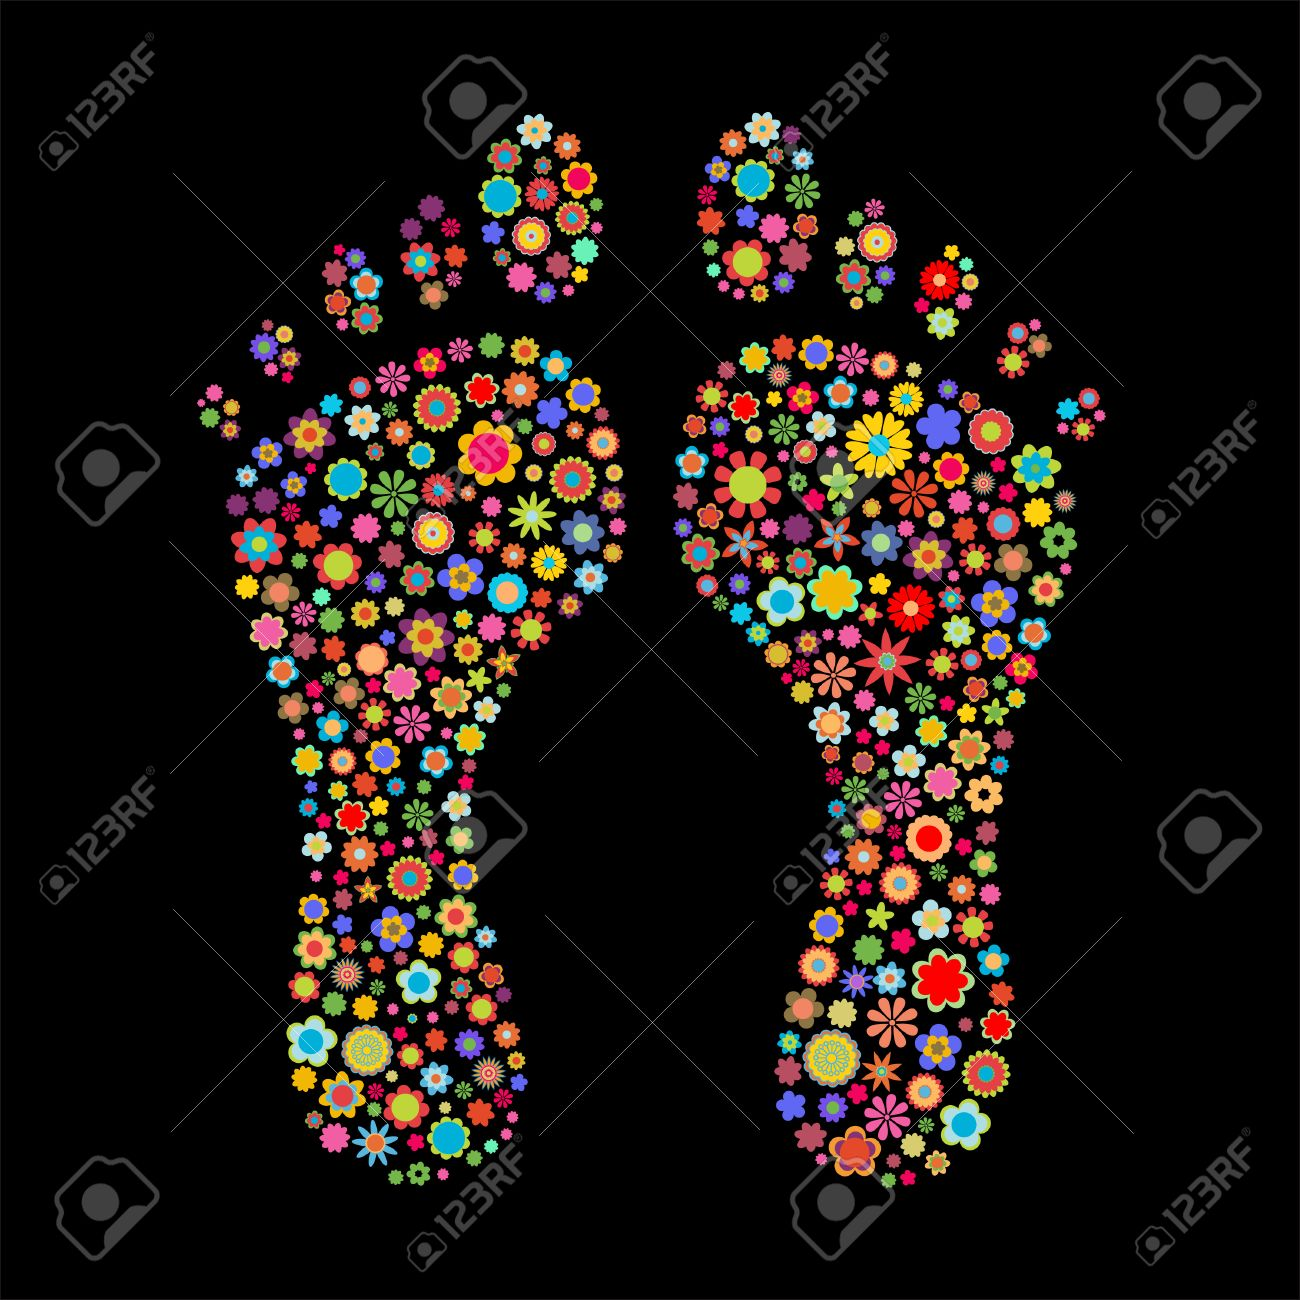 Vector illustration of footprint  shape  made up a lot of  multicolored small flowers on the black background Stock Vector - 4002794